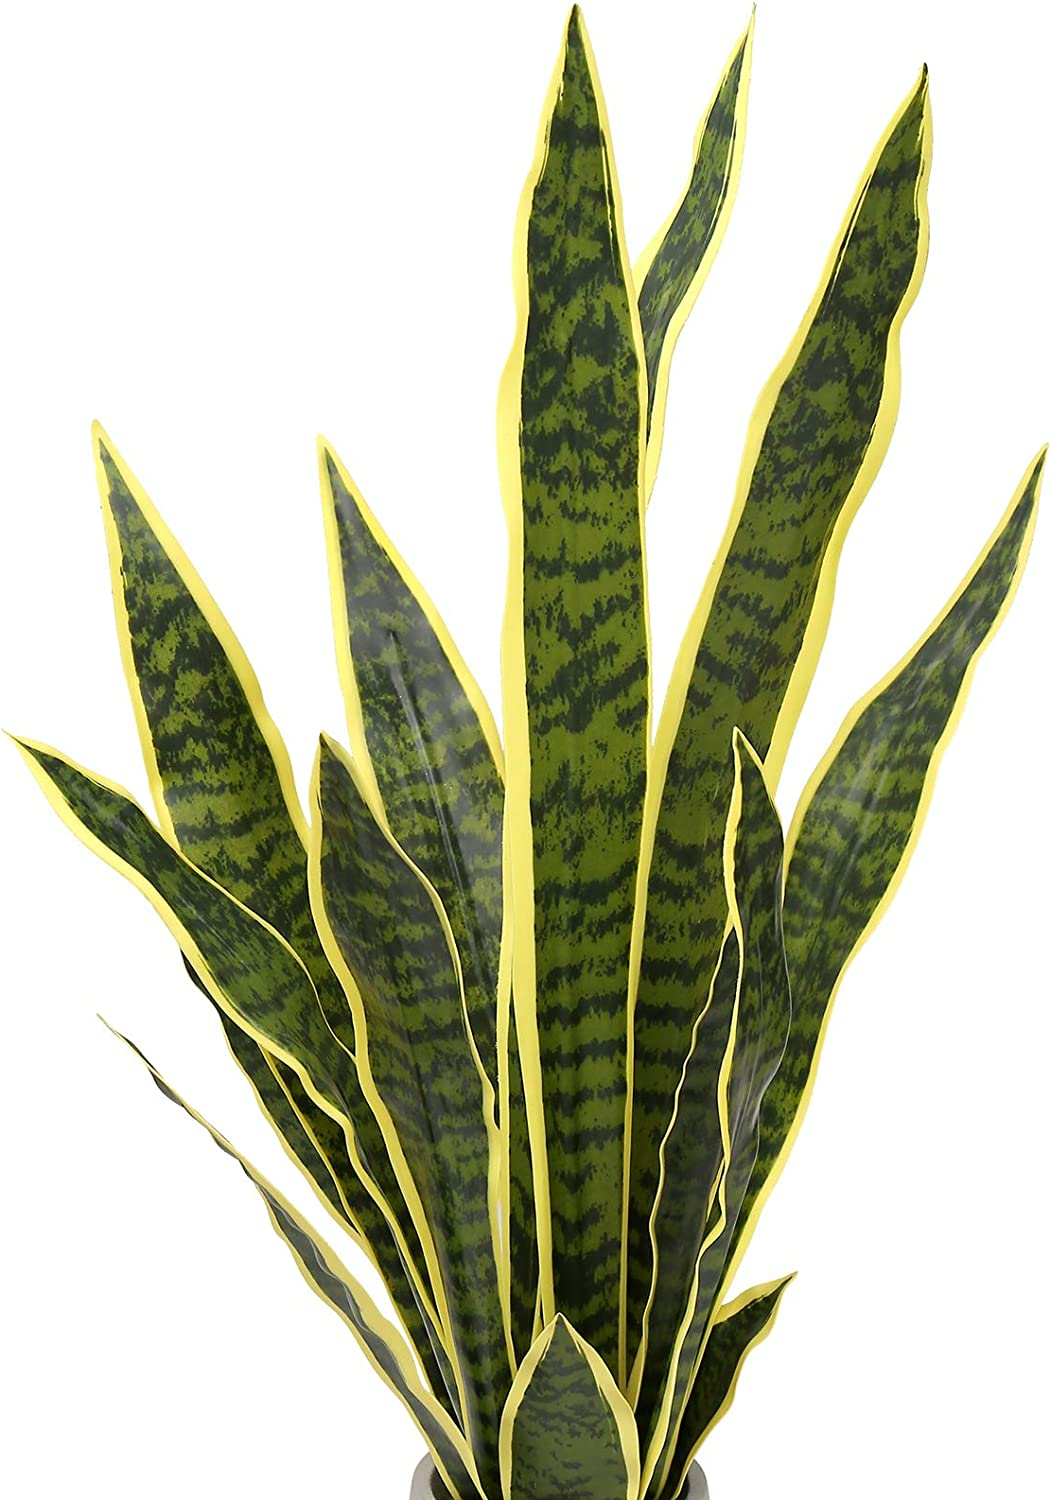 Summer Flower 15PCS Faux Snake Plant Leaves Set,23inch Tall Fake Sansevieria Plants Outdoor,Artificial Snake Plant Leaf,5 Sizes for Indoor Home Decor,Office,Garden,Tabletop Floor Decoration (Golden)